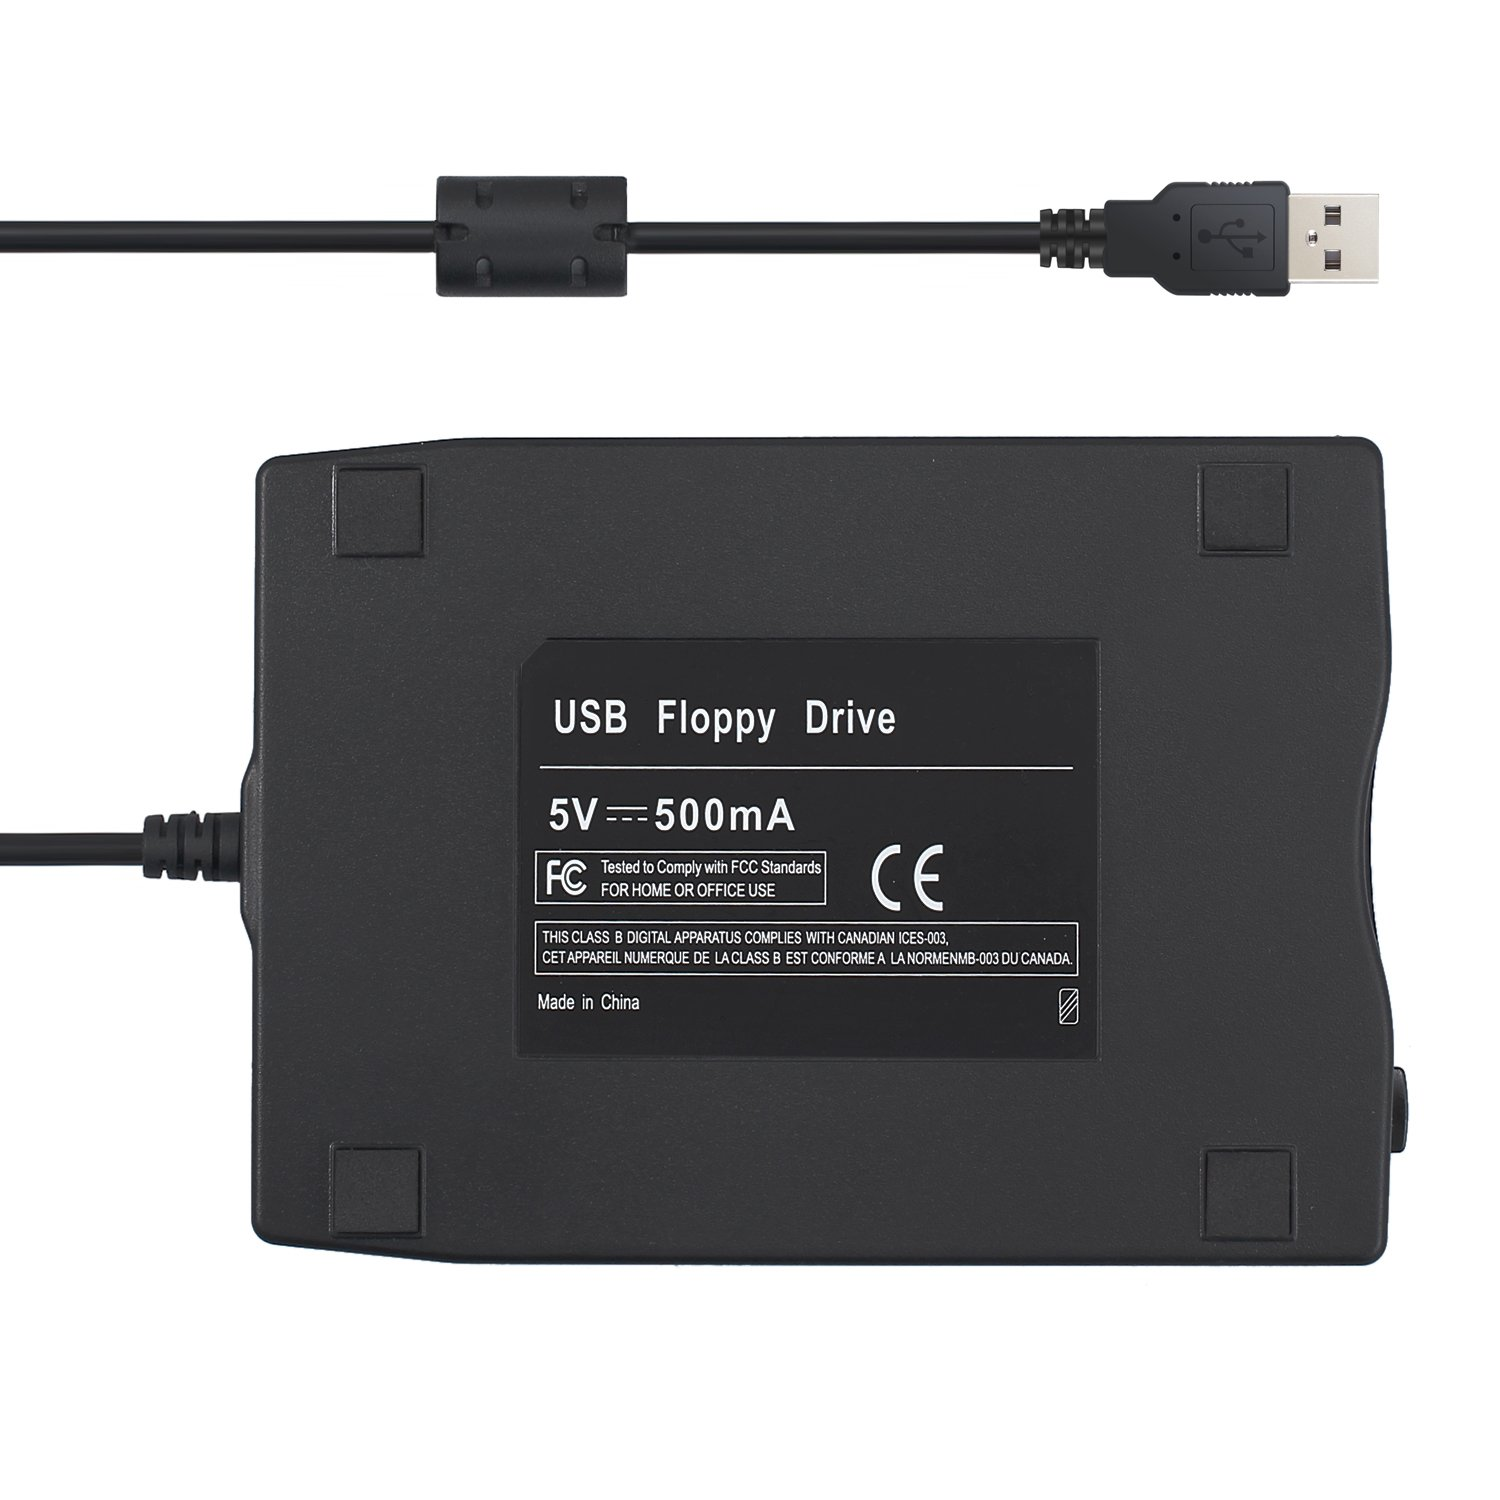 CAMWAY 3.5'' Portable USB 2.0 External Floppy Disk Drive 1.44MB for Laptop Desktop PC Win XP/7/8/10 by CAMWAY (Image #6)